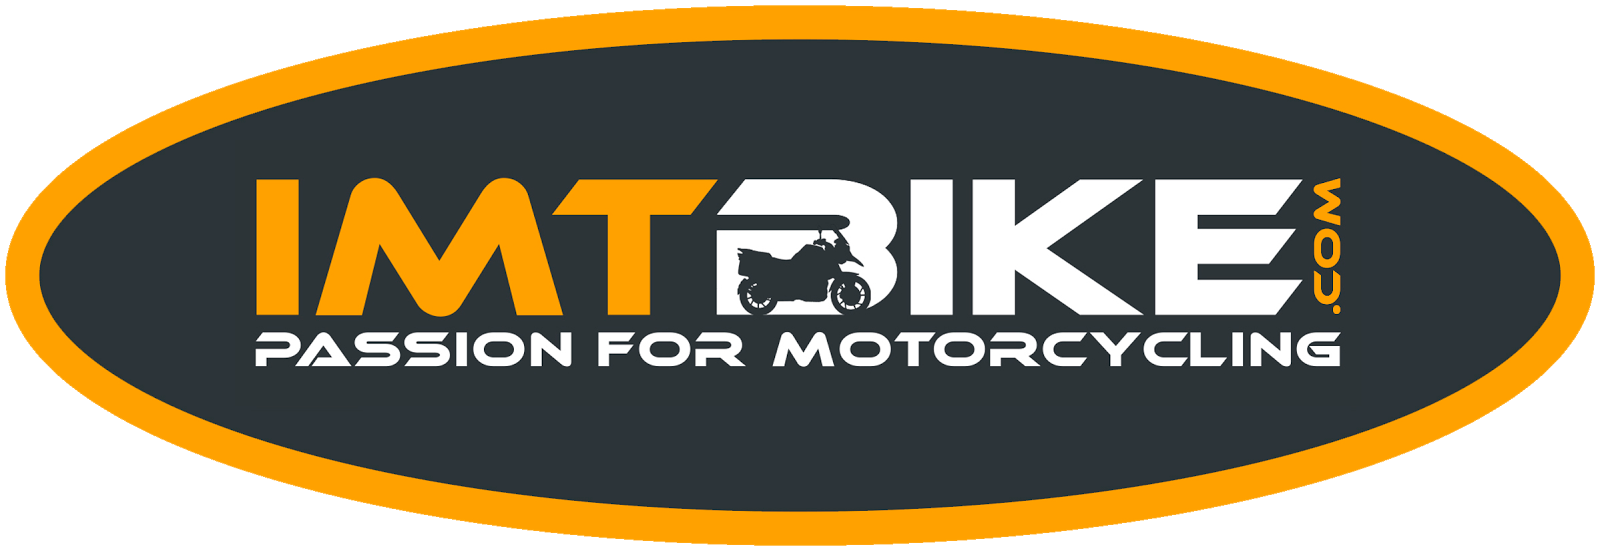 IMTBike - Alquiler de motos